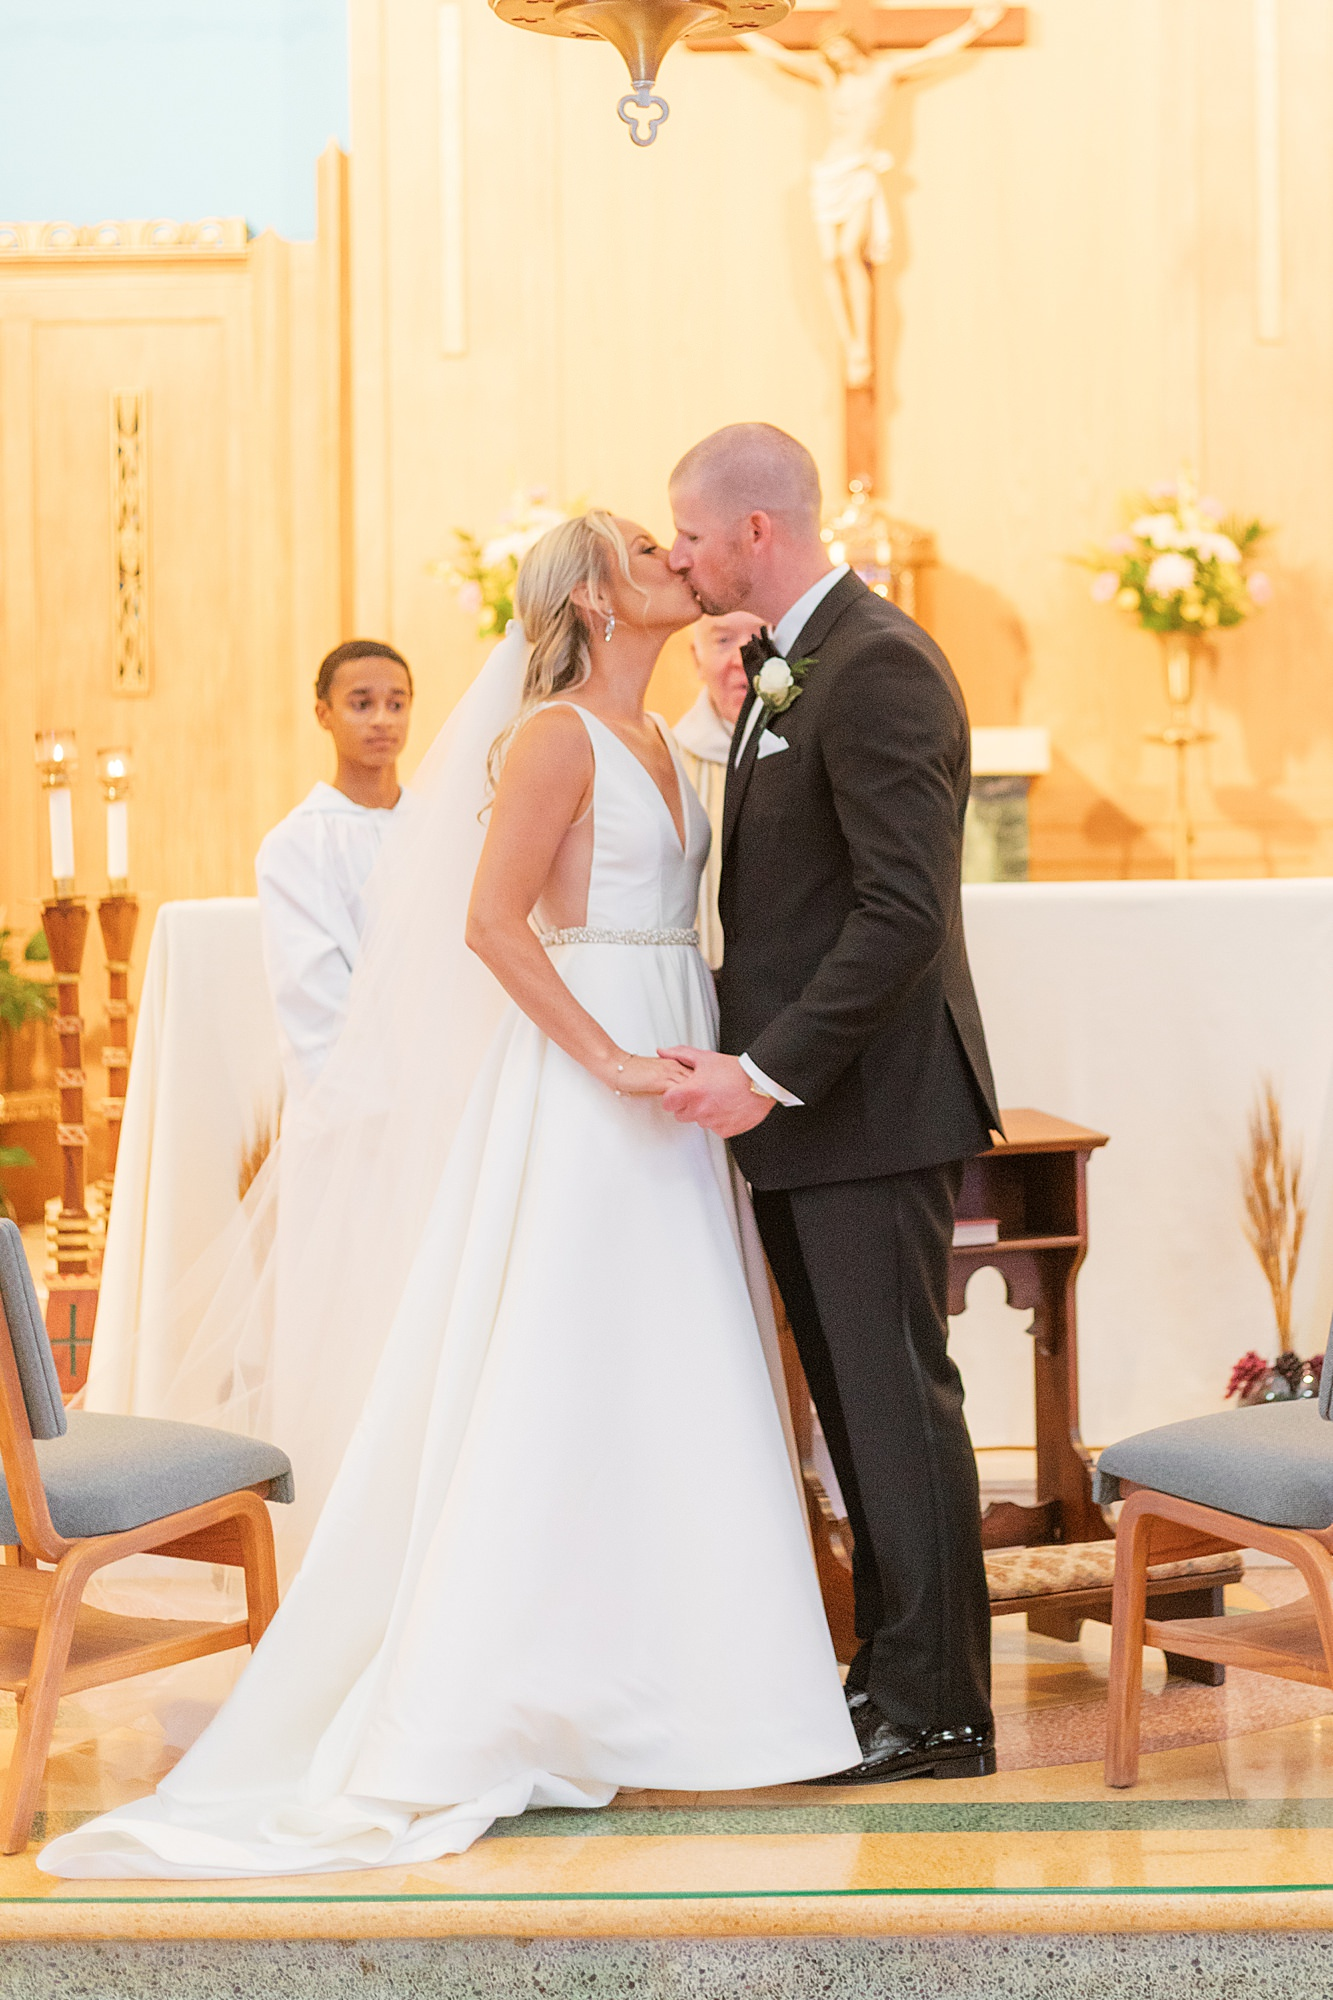 Natural and Vibrant Wedding Photography at the Reeds in Stone Harbor NJ by Magdalena Studios 0025